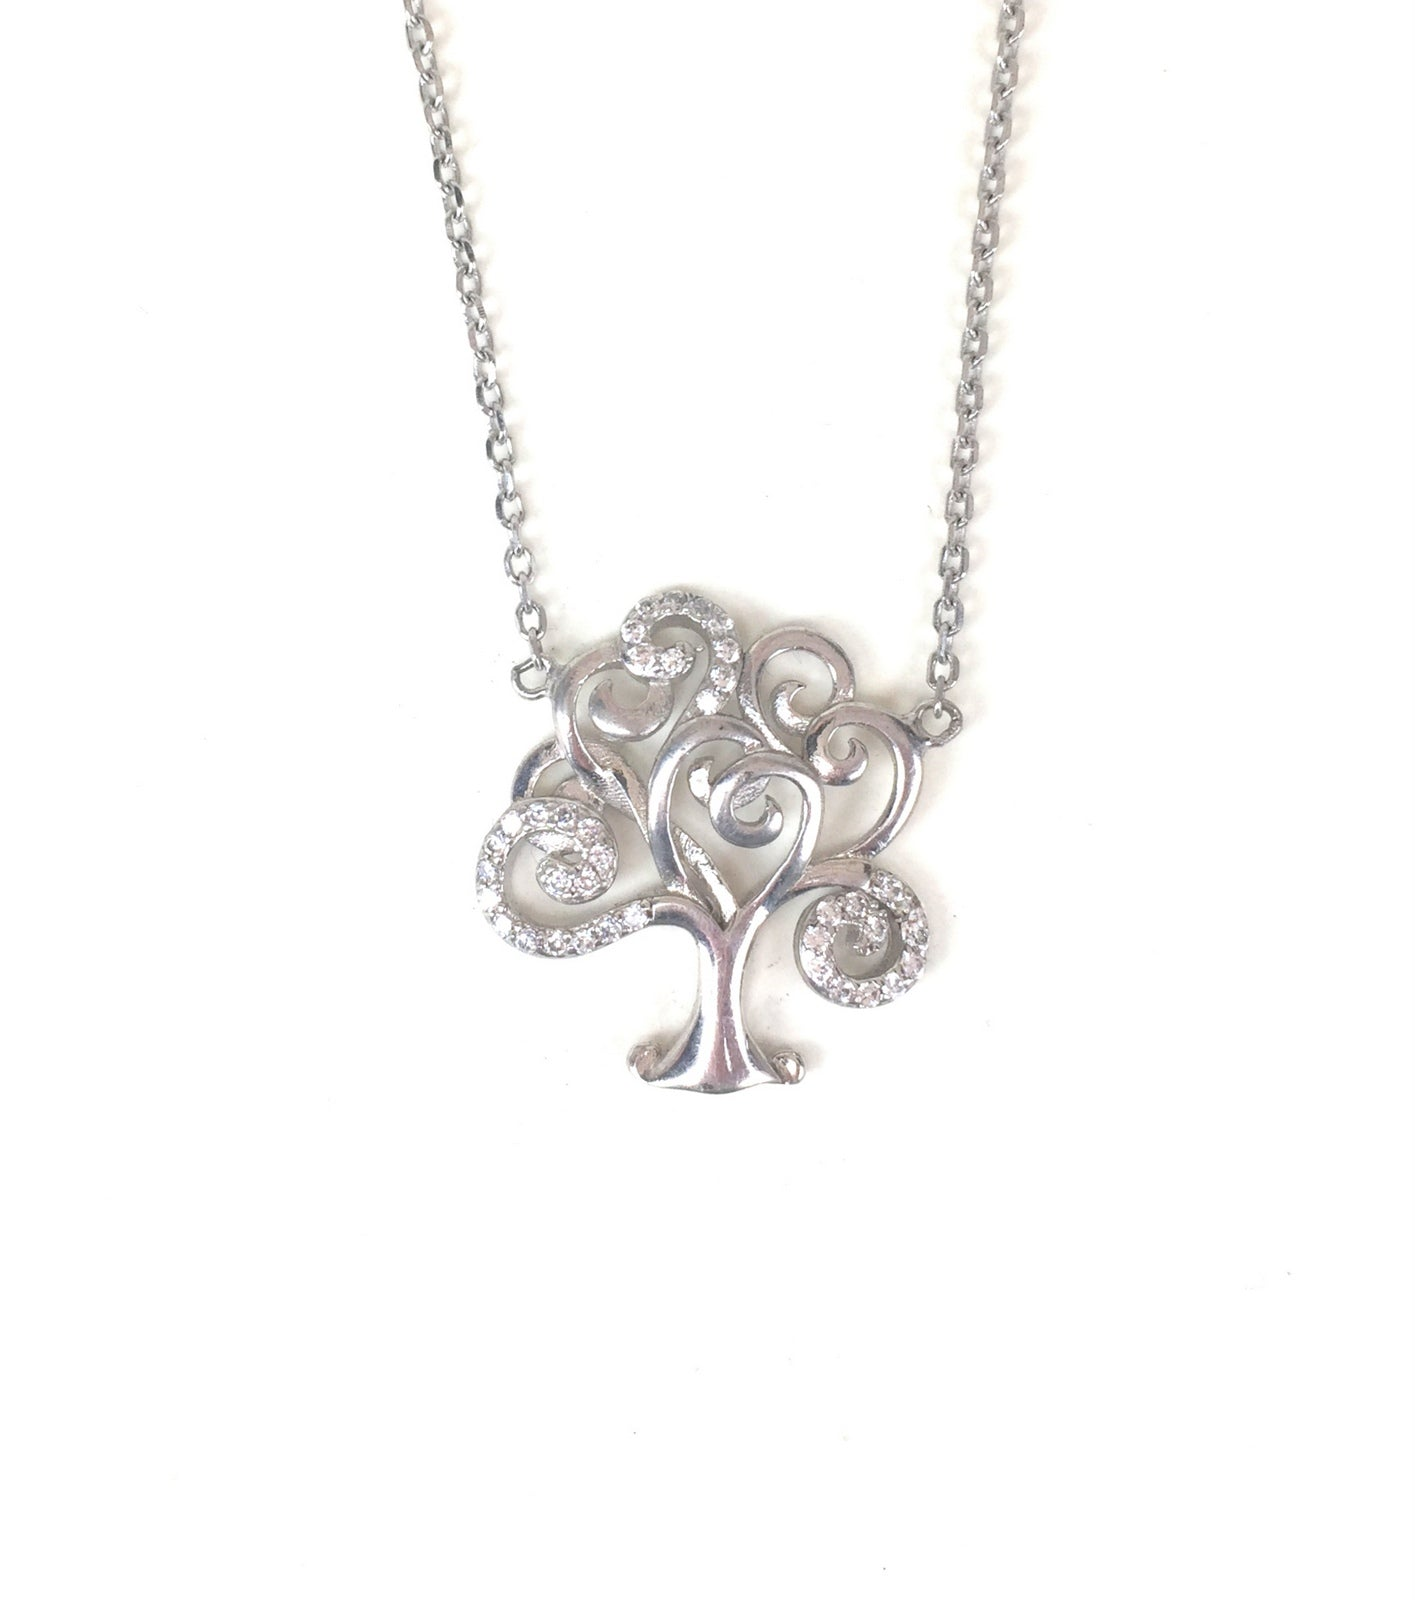 TREE PAVE CZ STERLING SILVER NECKLACE